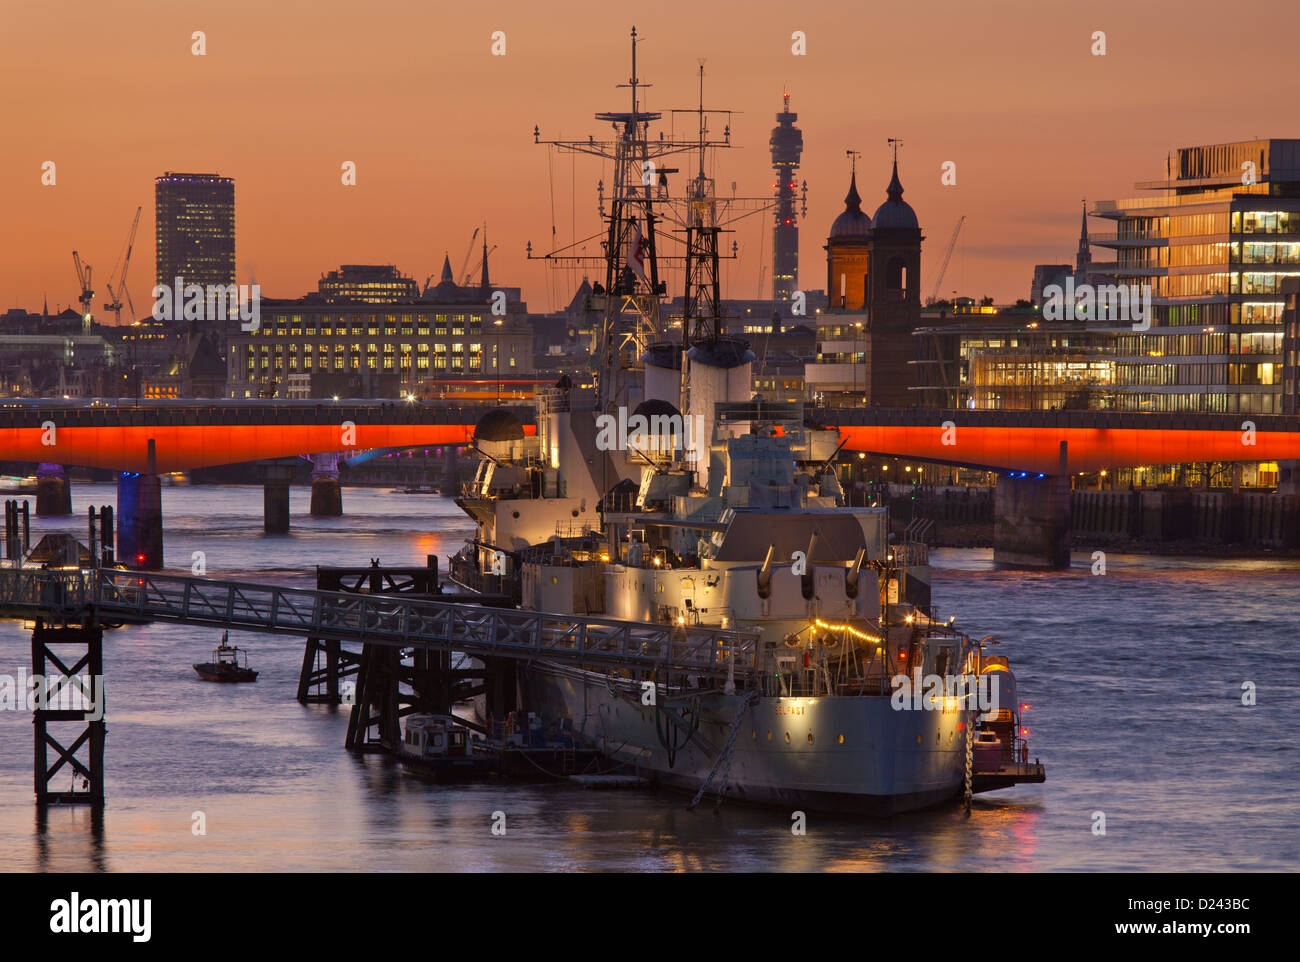 HMS Belfast moored on the Thames with London bridge skyline and post office tower in background at sunset, London, - Stock Image